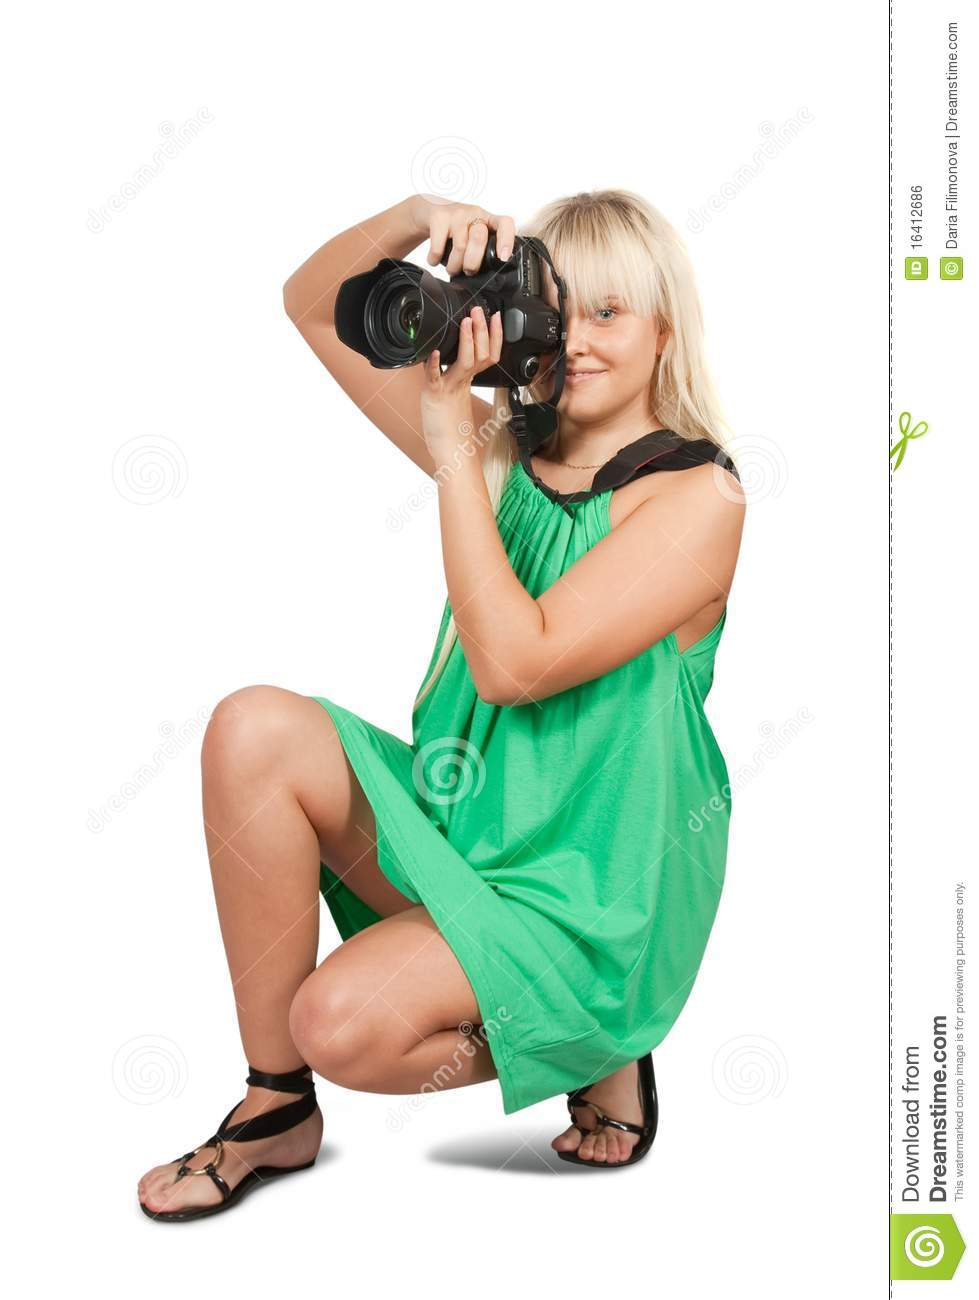 female photographer royalty free stock image image 16412686 beach volleyball clipart images Volleyball Clip Art